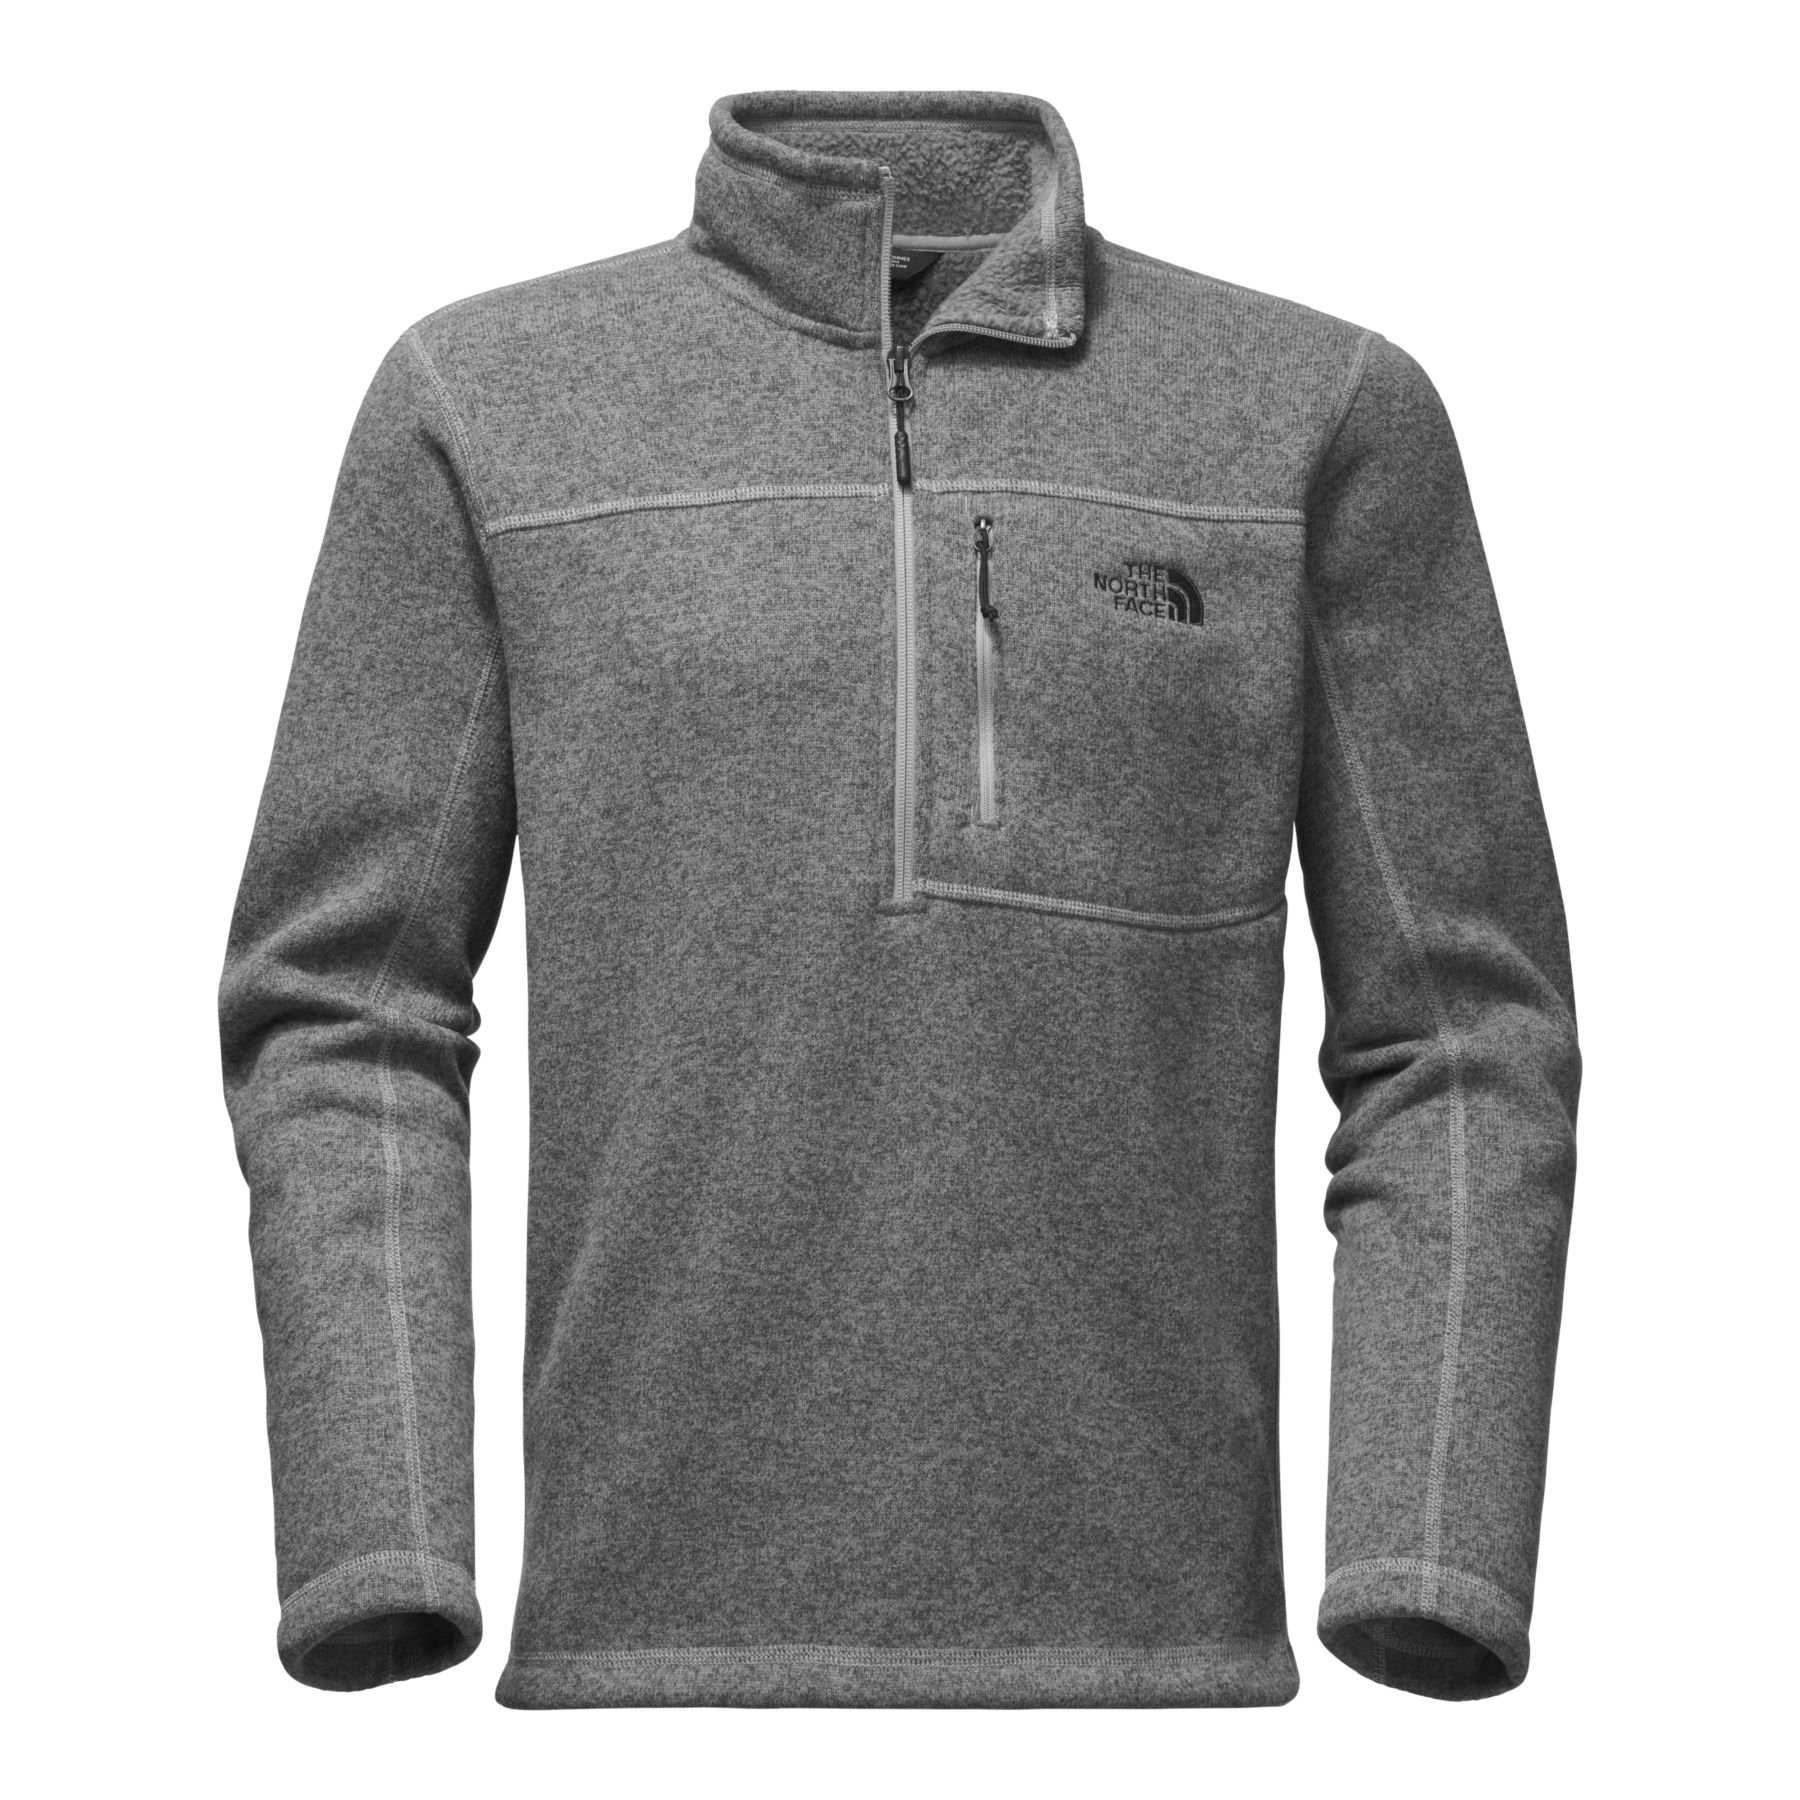 The North Face Men's Gordon Lyons 1 & 4 Zip - TNF Medium Grey Heather - L by The North Face (Image #1)